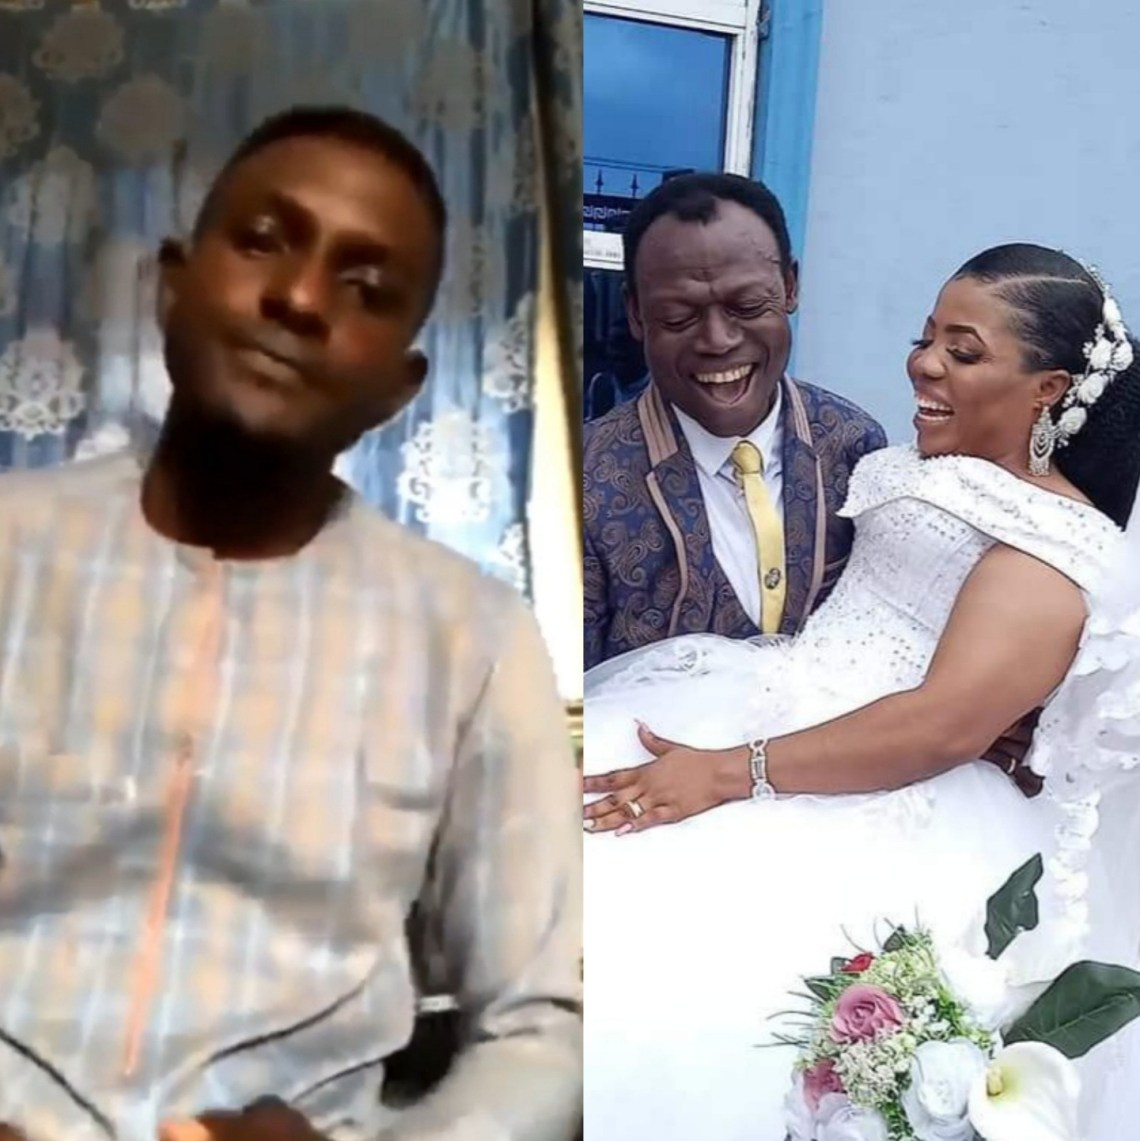 """""""I was shocked when I saw the wedding pictures online"""" son of pastor who married his member"""